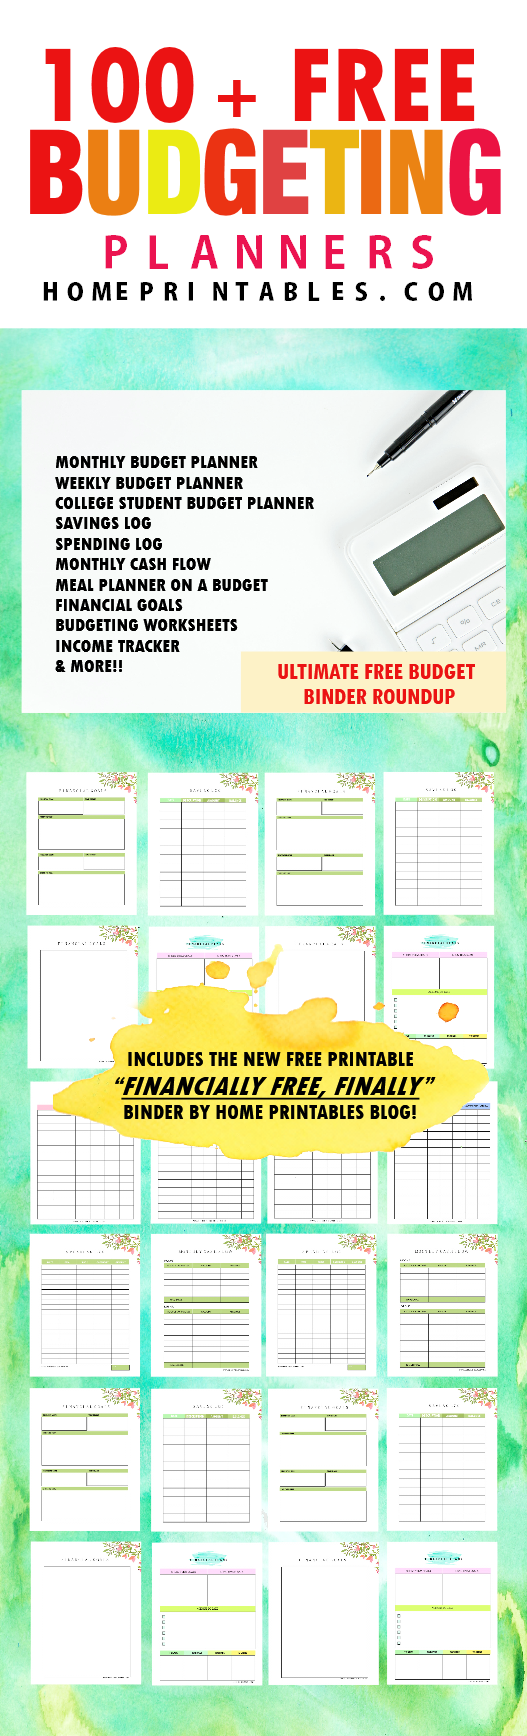 100+ Free Budget Templates For Financial Success!